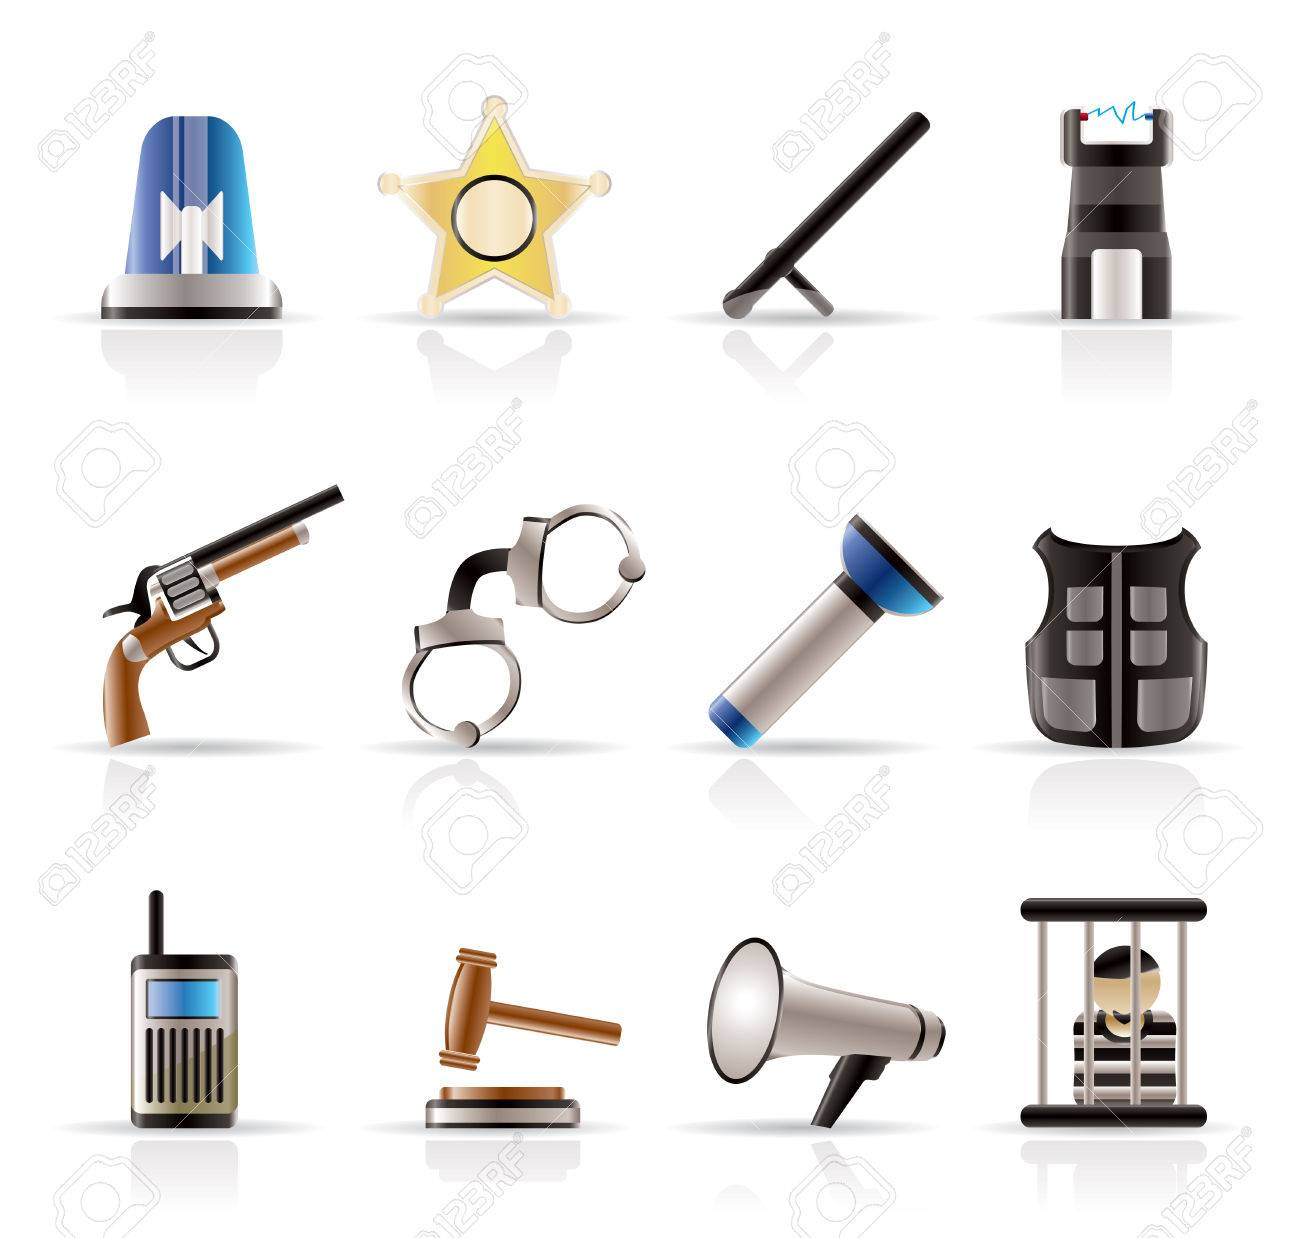 law, order, police and crime icons - vector icon set Stock Vector - 5185636